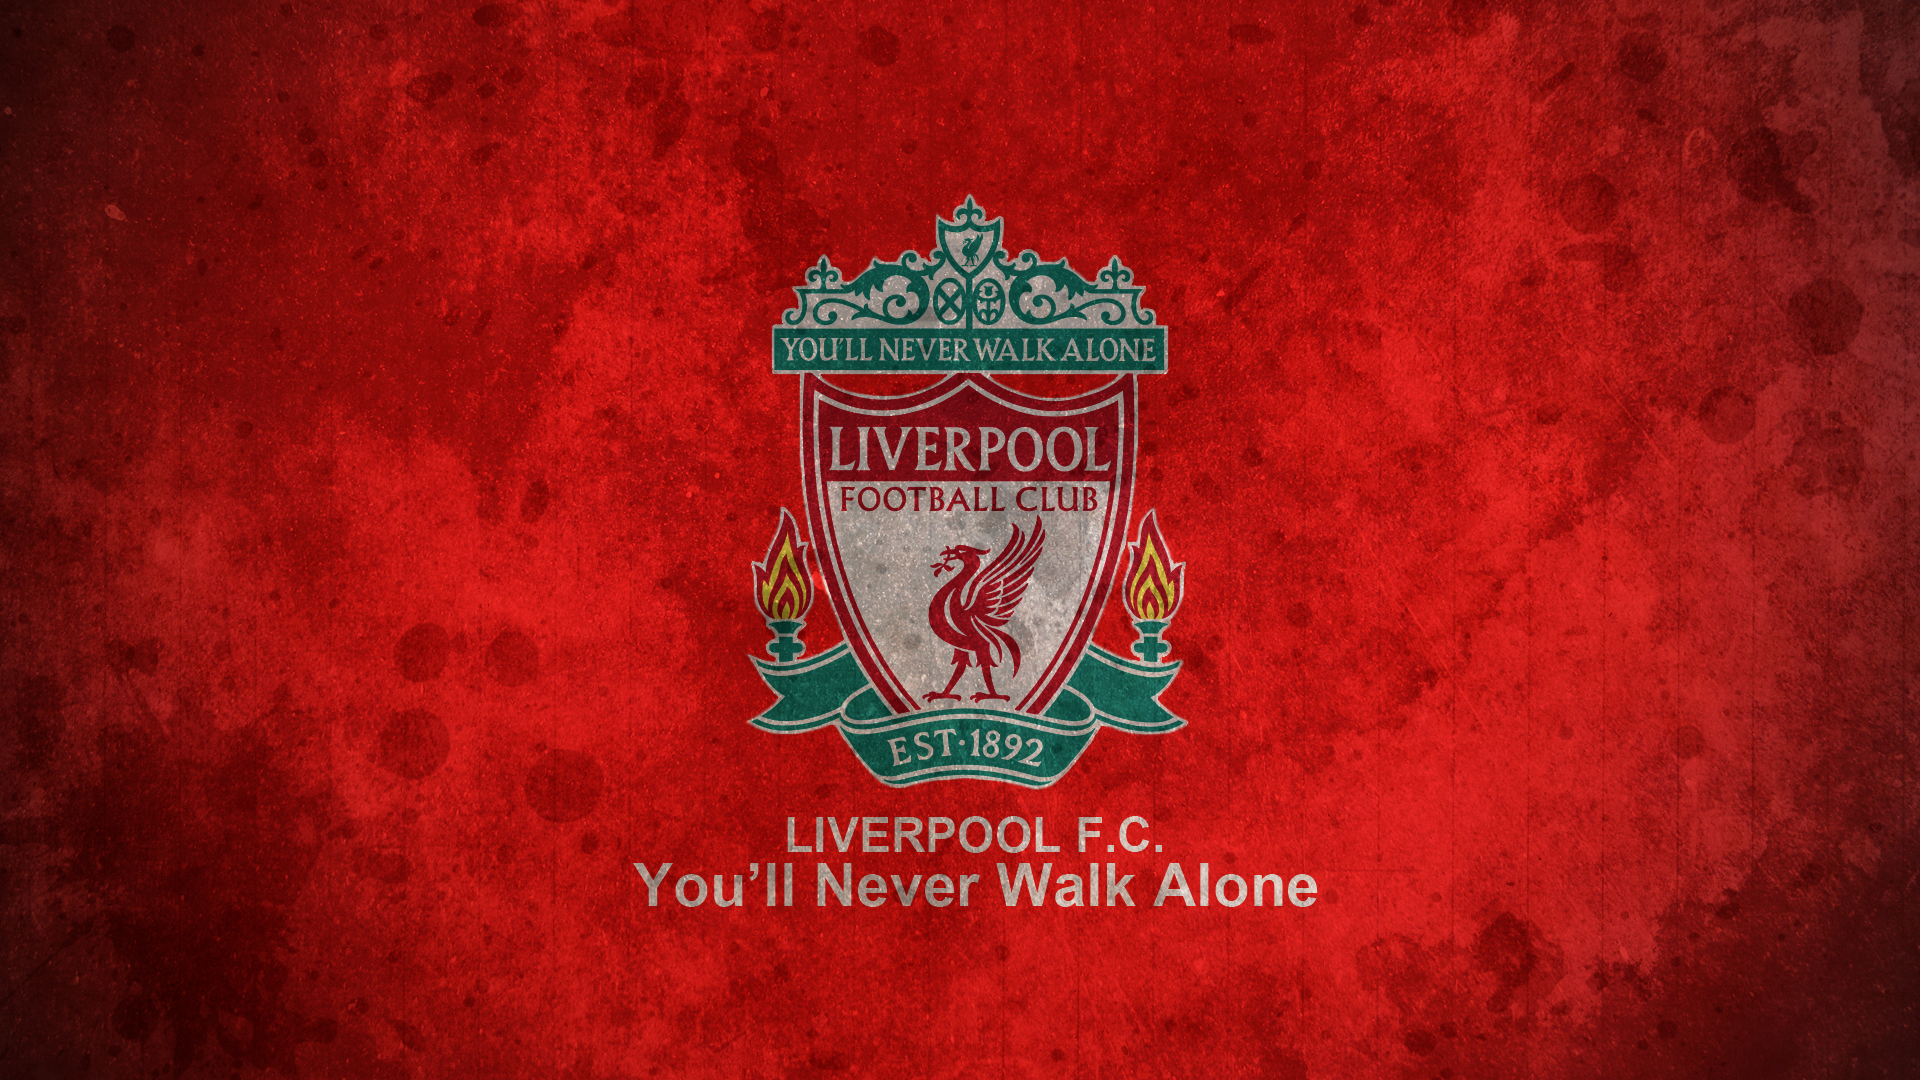 Collection of Liverpool Fc Widescreen Wallpapers: 39931936, 1920x1080 px